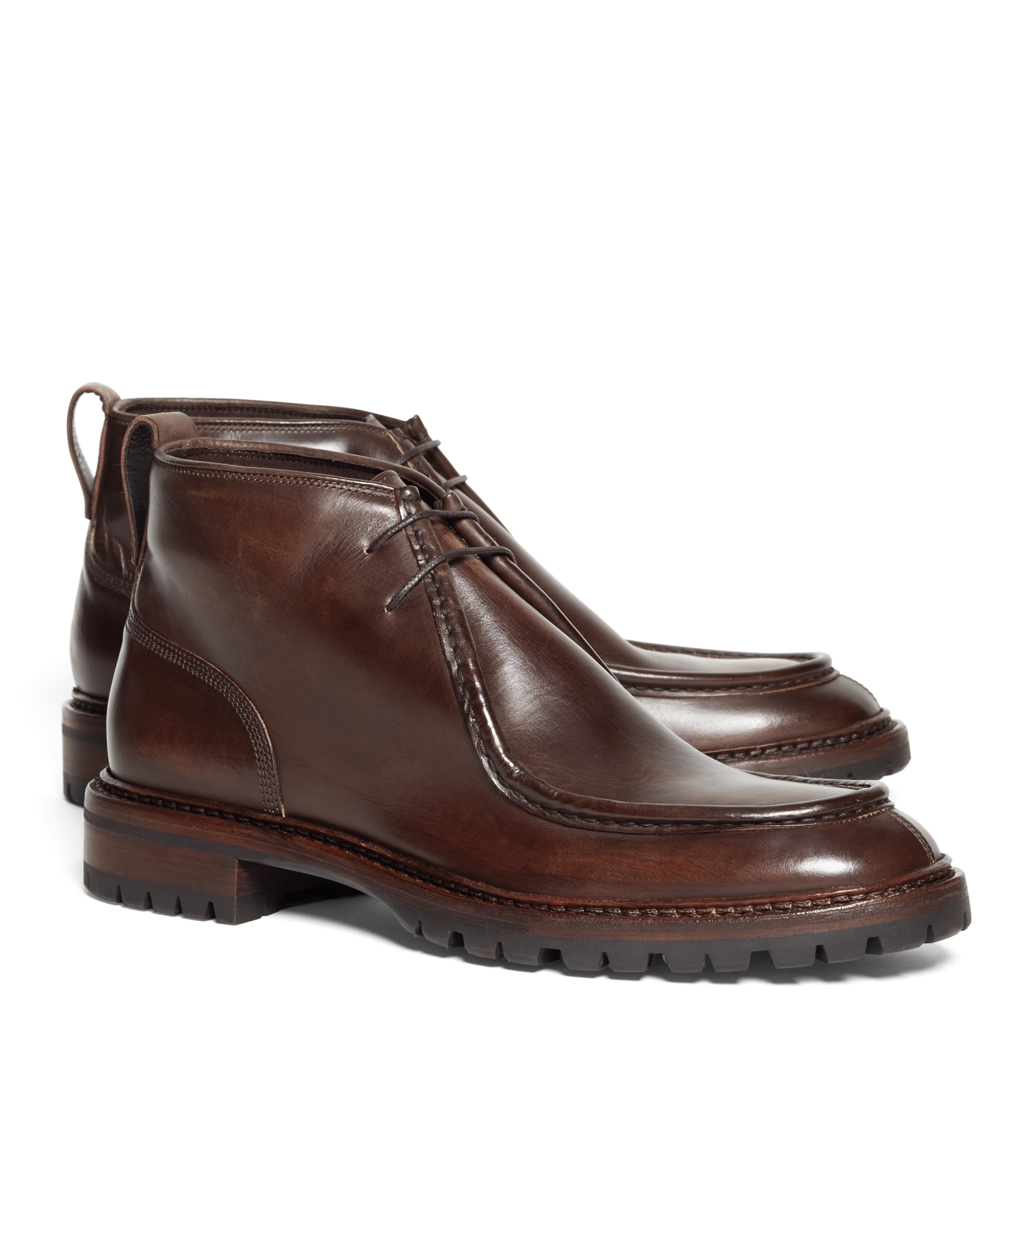 Leather Chukka Boots (Brown)